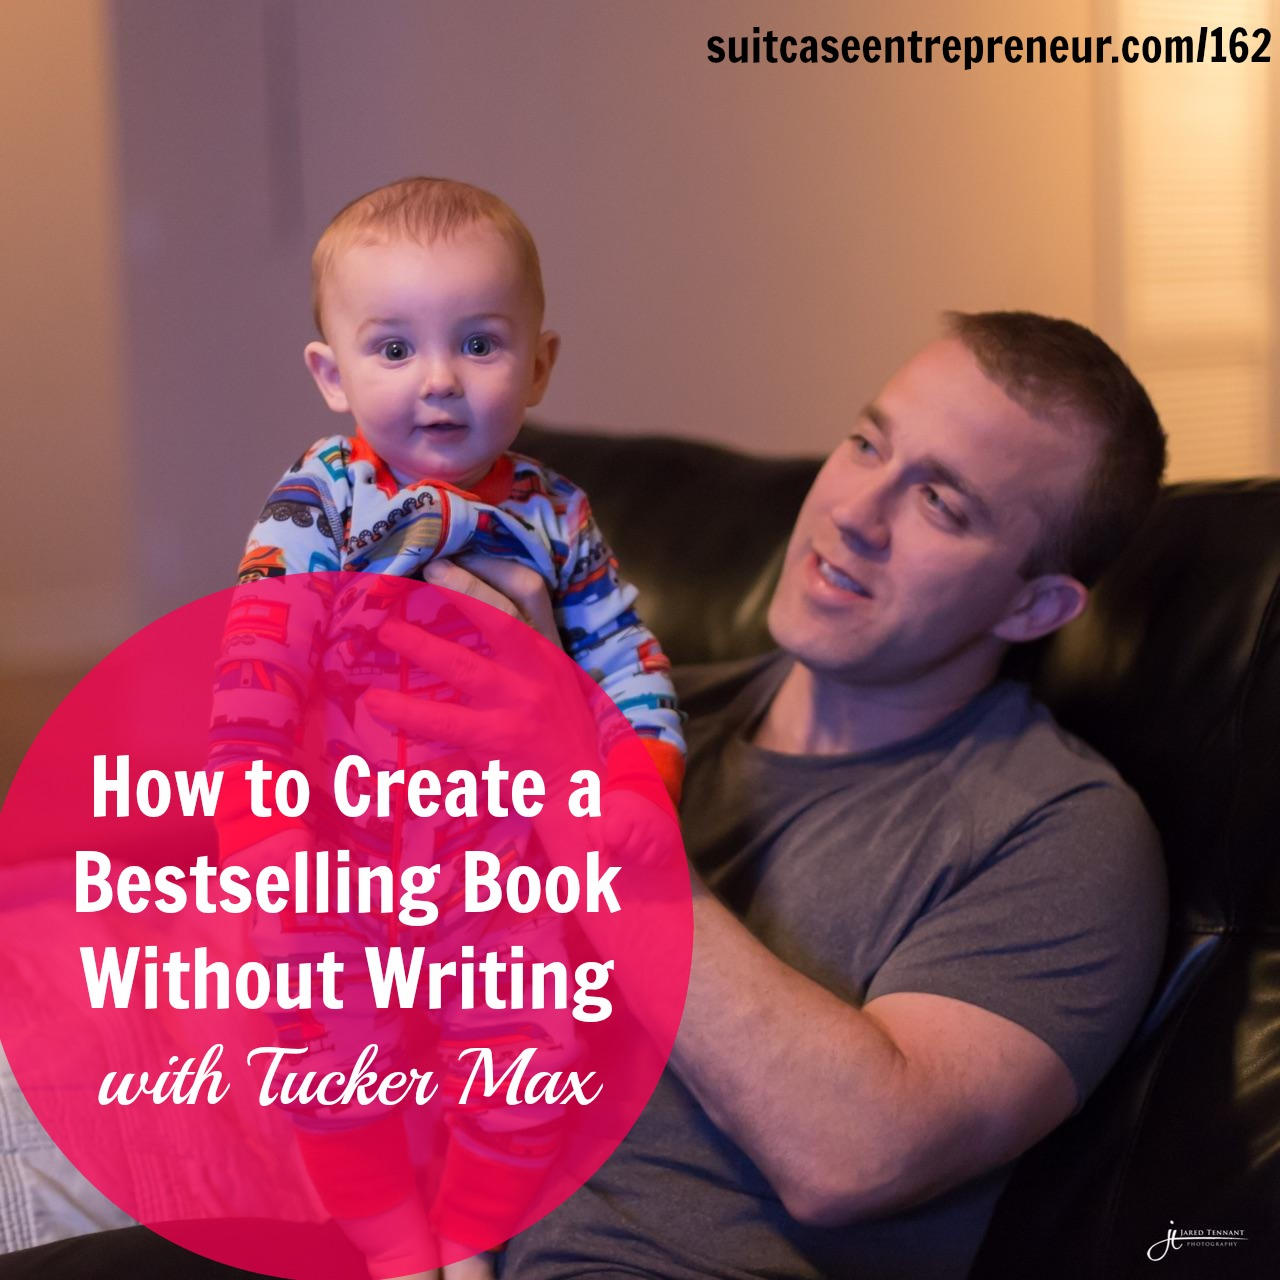 [162] How to Create a Bestselling Book Without Writing with Tucker Max